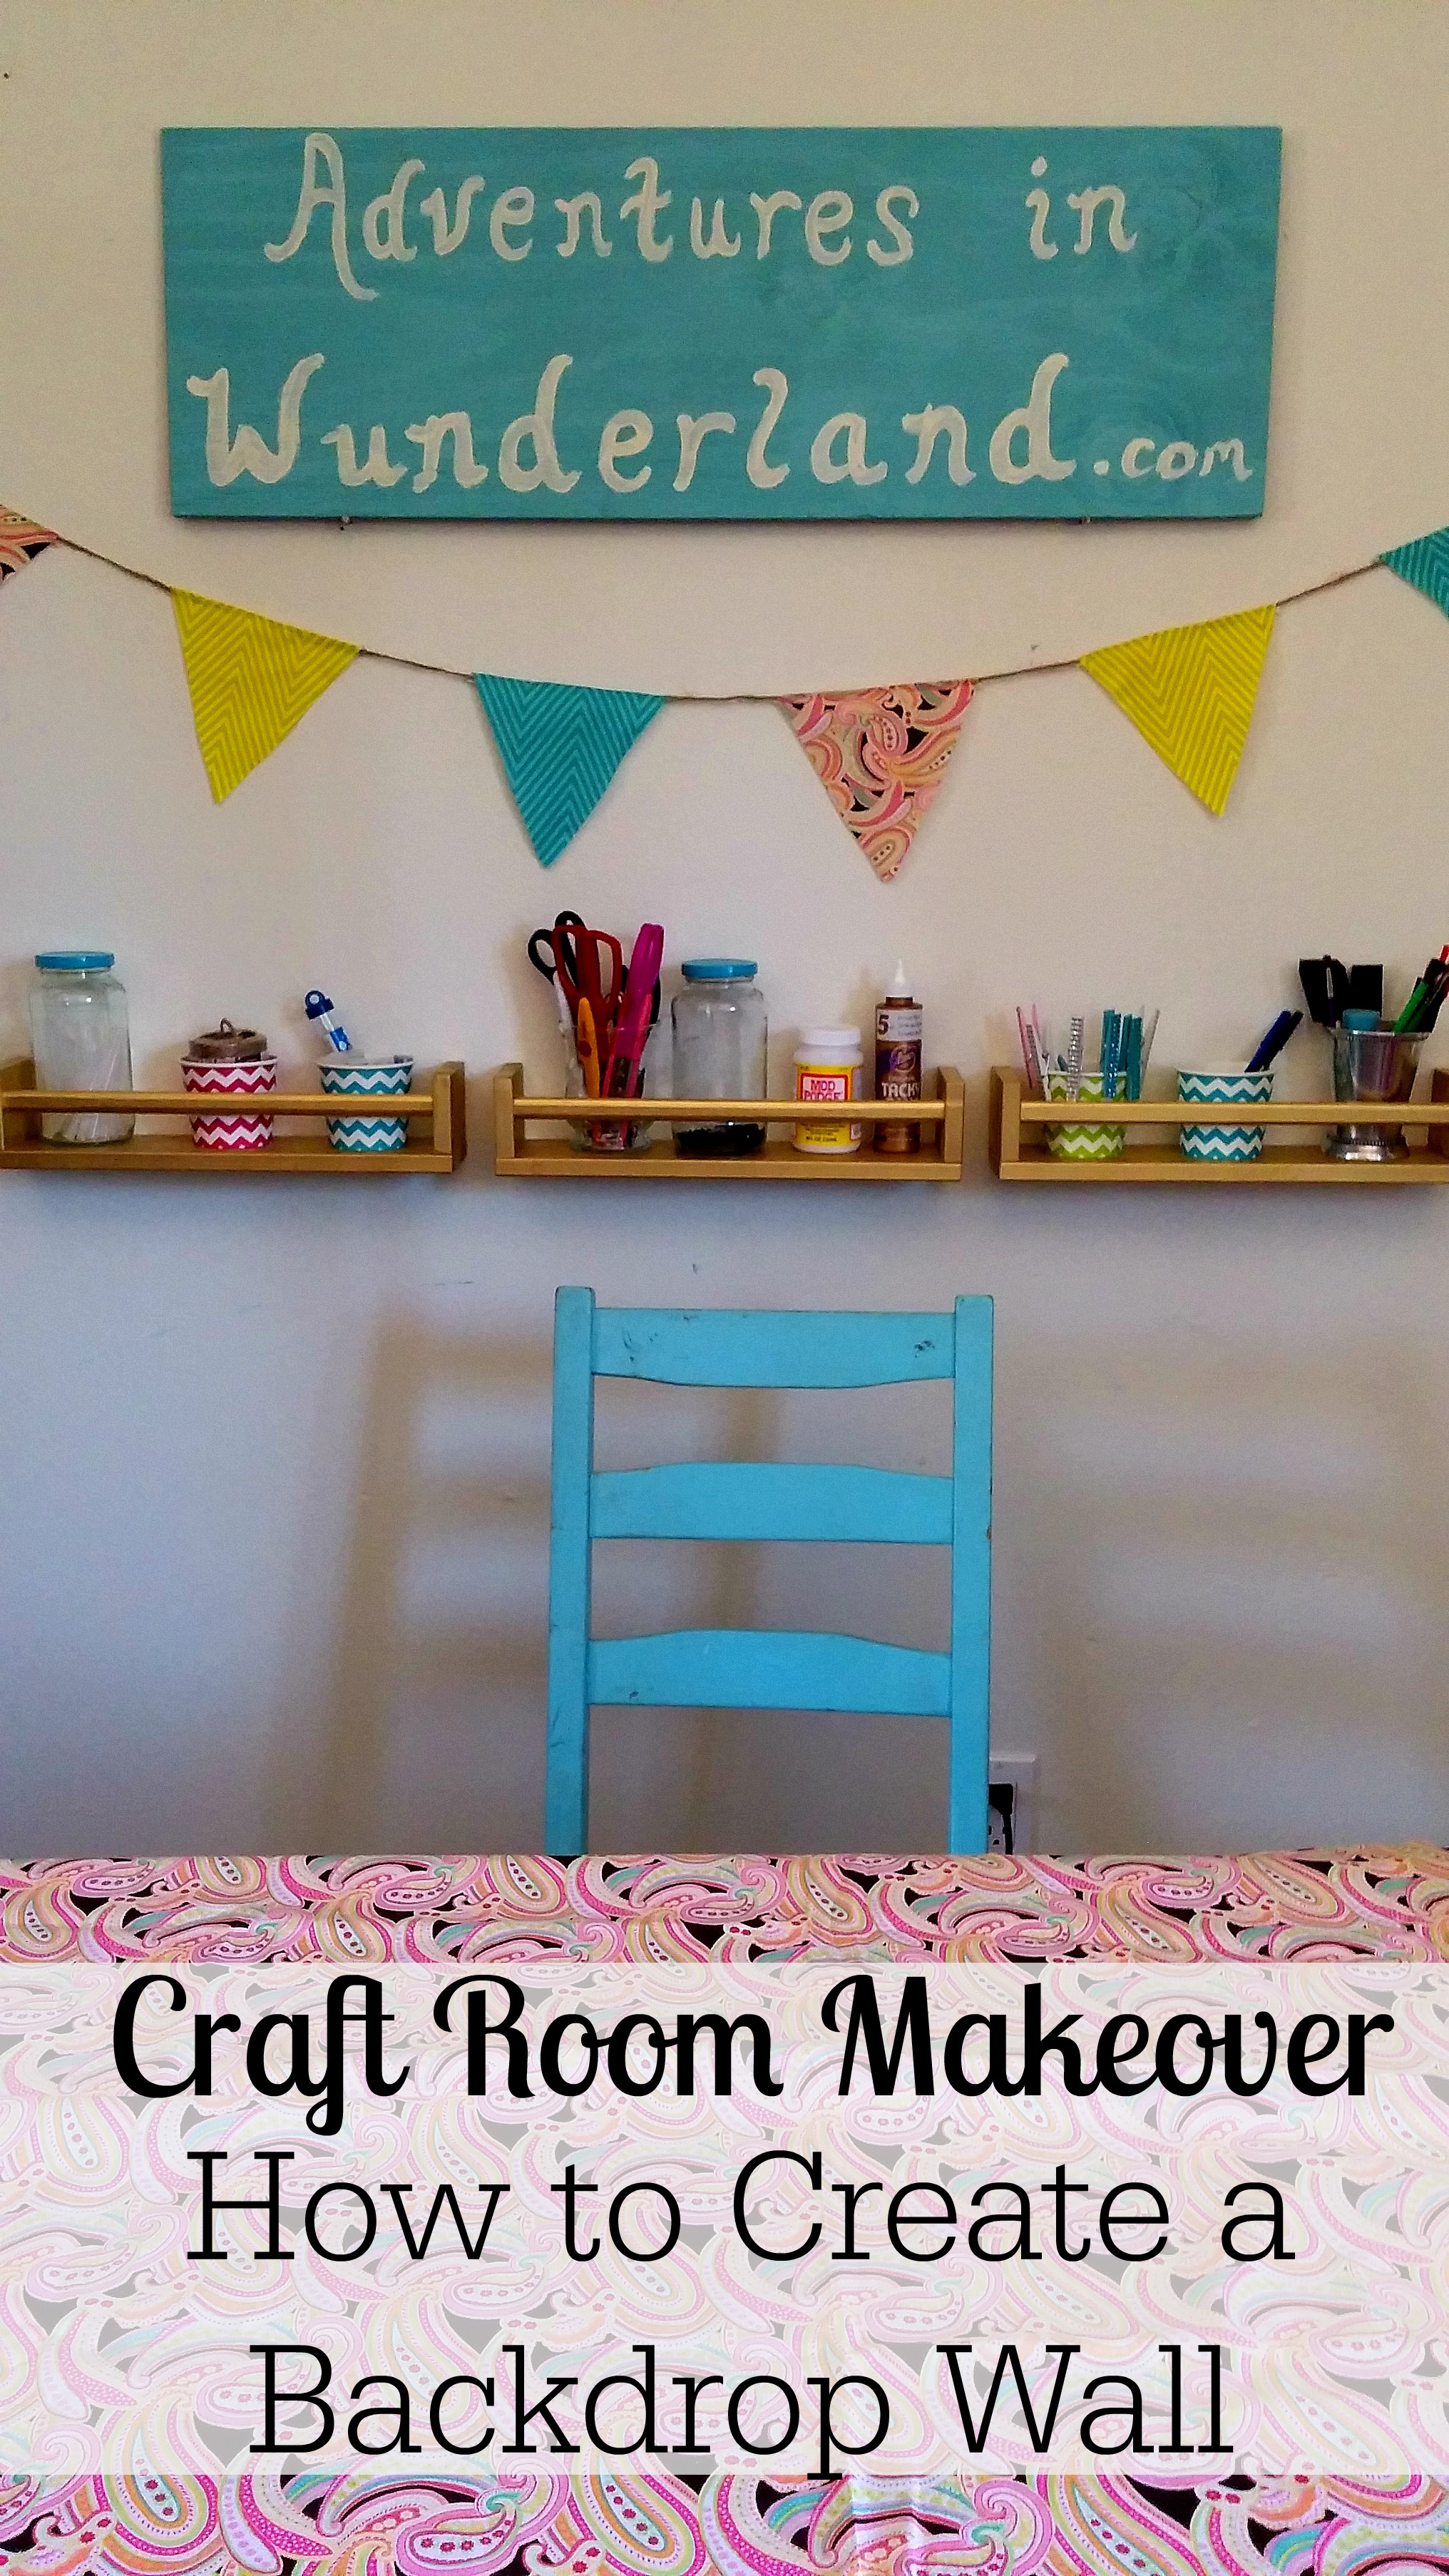 Craft Room Makeover: How to create a backdrop wall